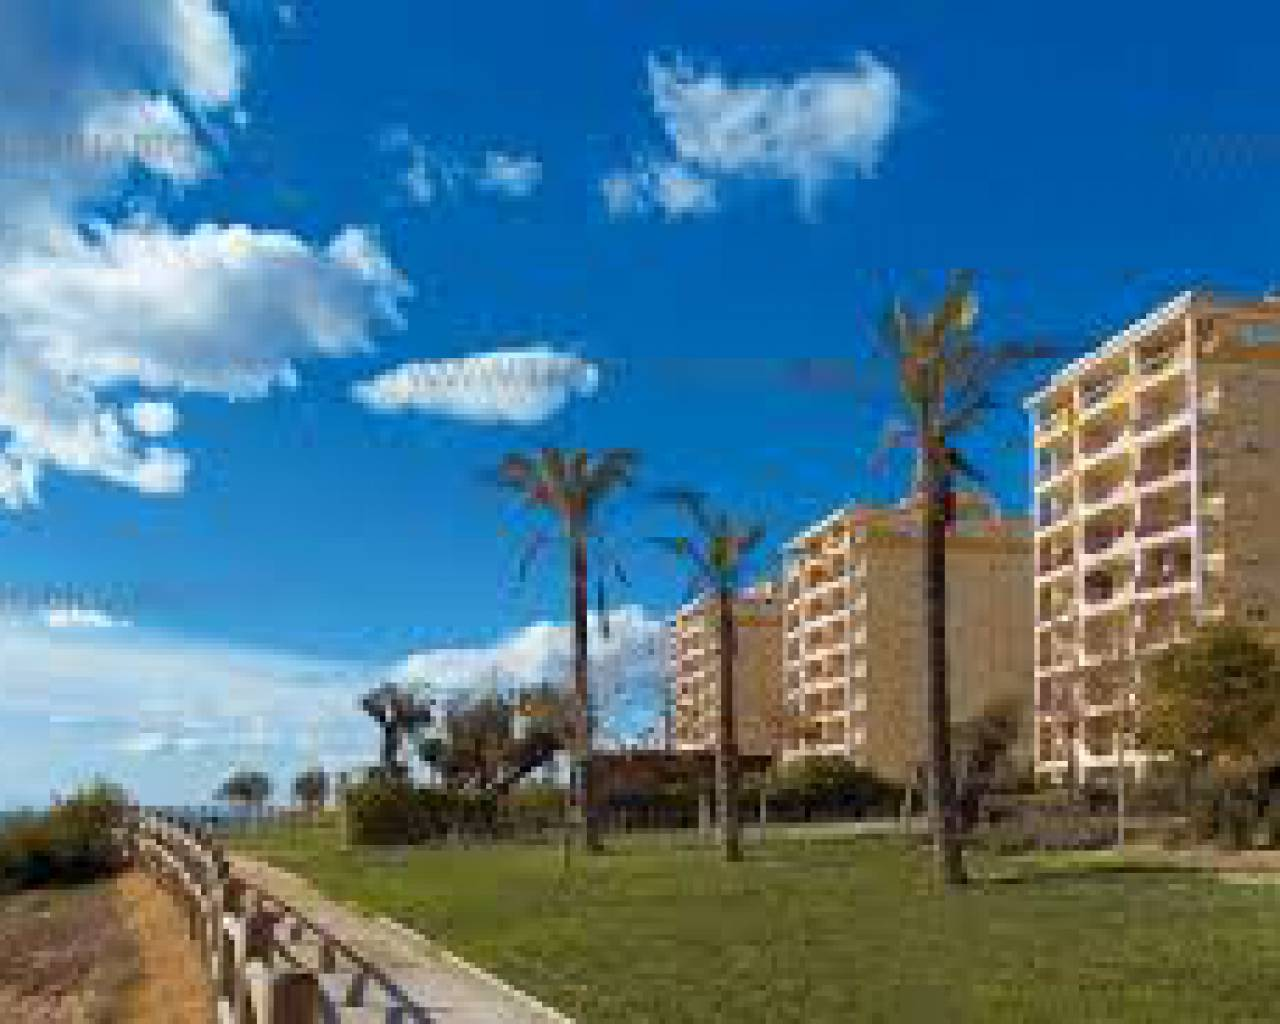 Sale - Garage - Villajoyosa - Playa Torres